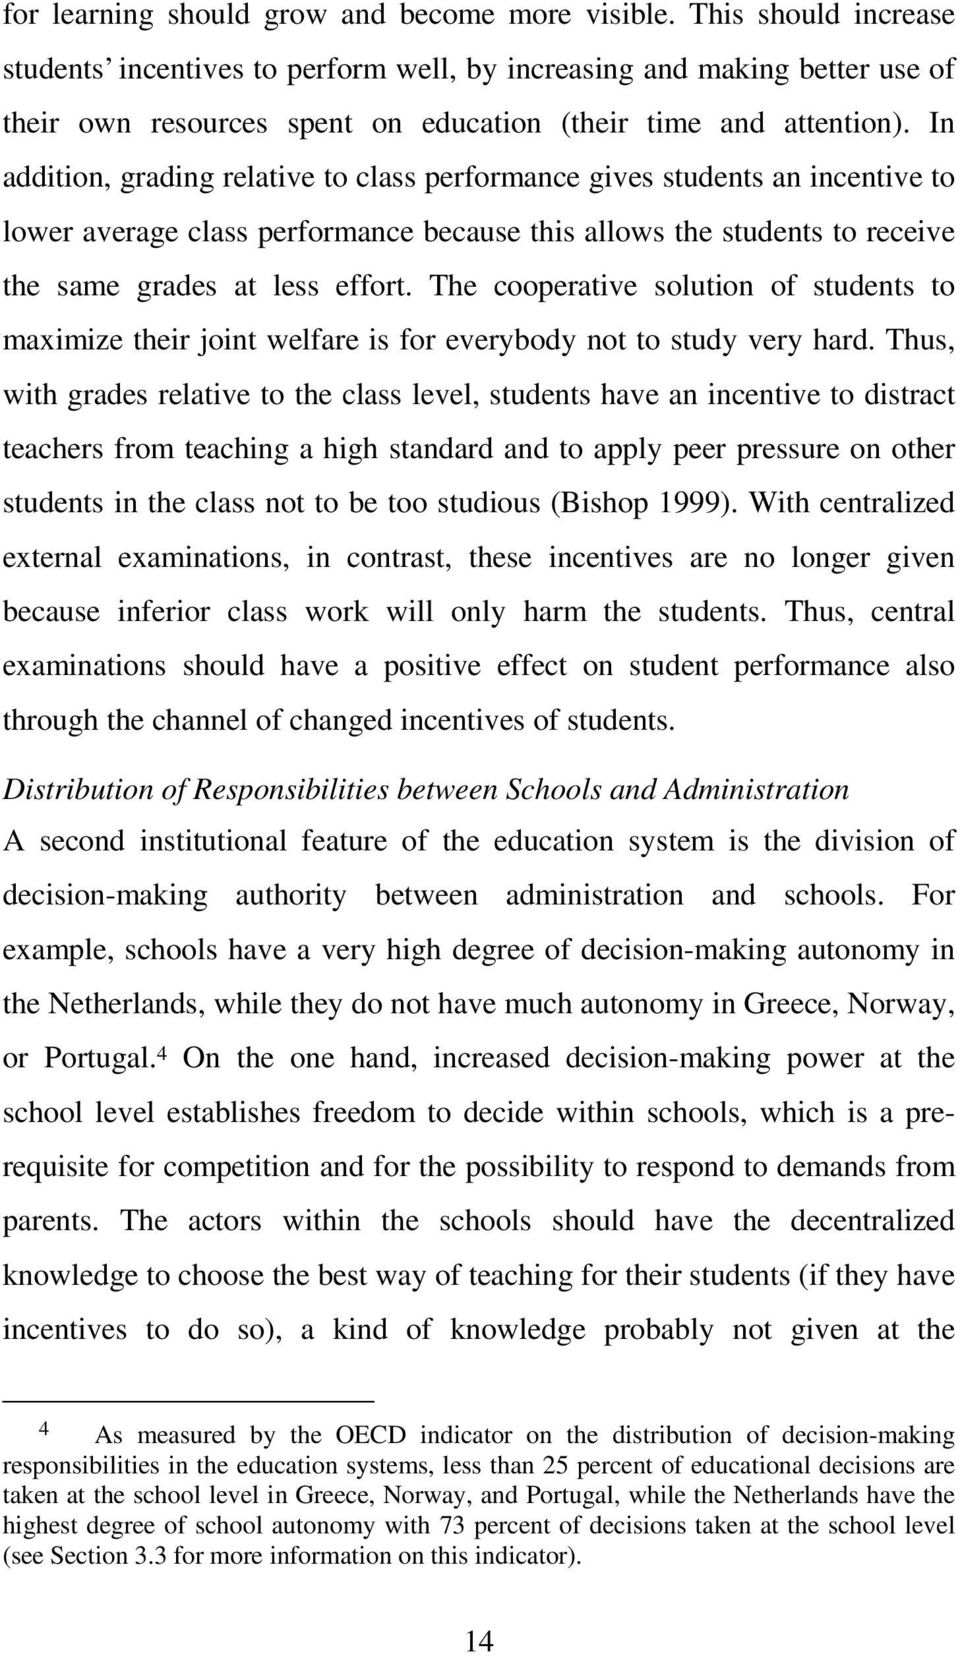 In addition, grading relative to class performance gives students an incentive to lower average class performance because this allows the students to receive the same grades at less effort.